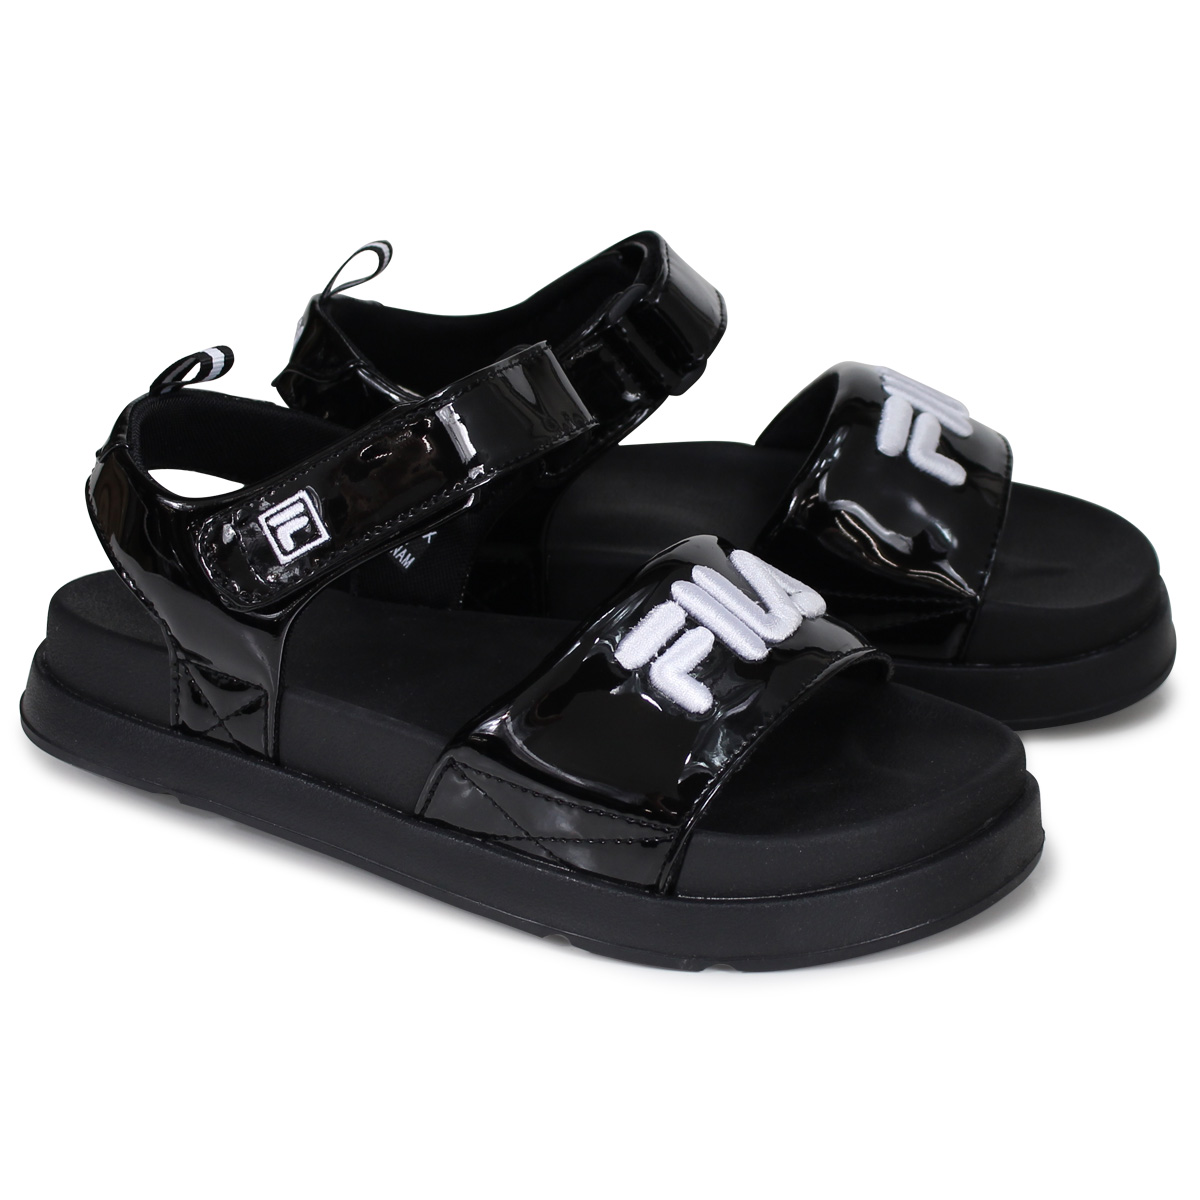 29e878ab36 FILA DRIFTER JACKED UP SD SHINY Fila drifter sandals Lady's black  FS1SPA2024X [load planned Shinnyu load in reservation product 7/12  containing]